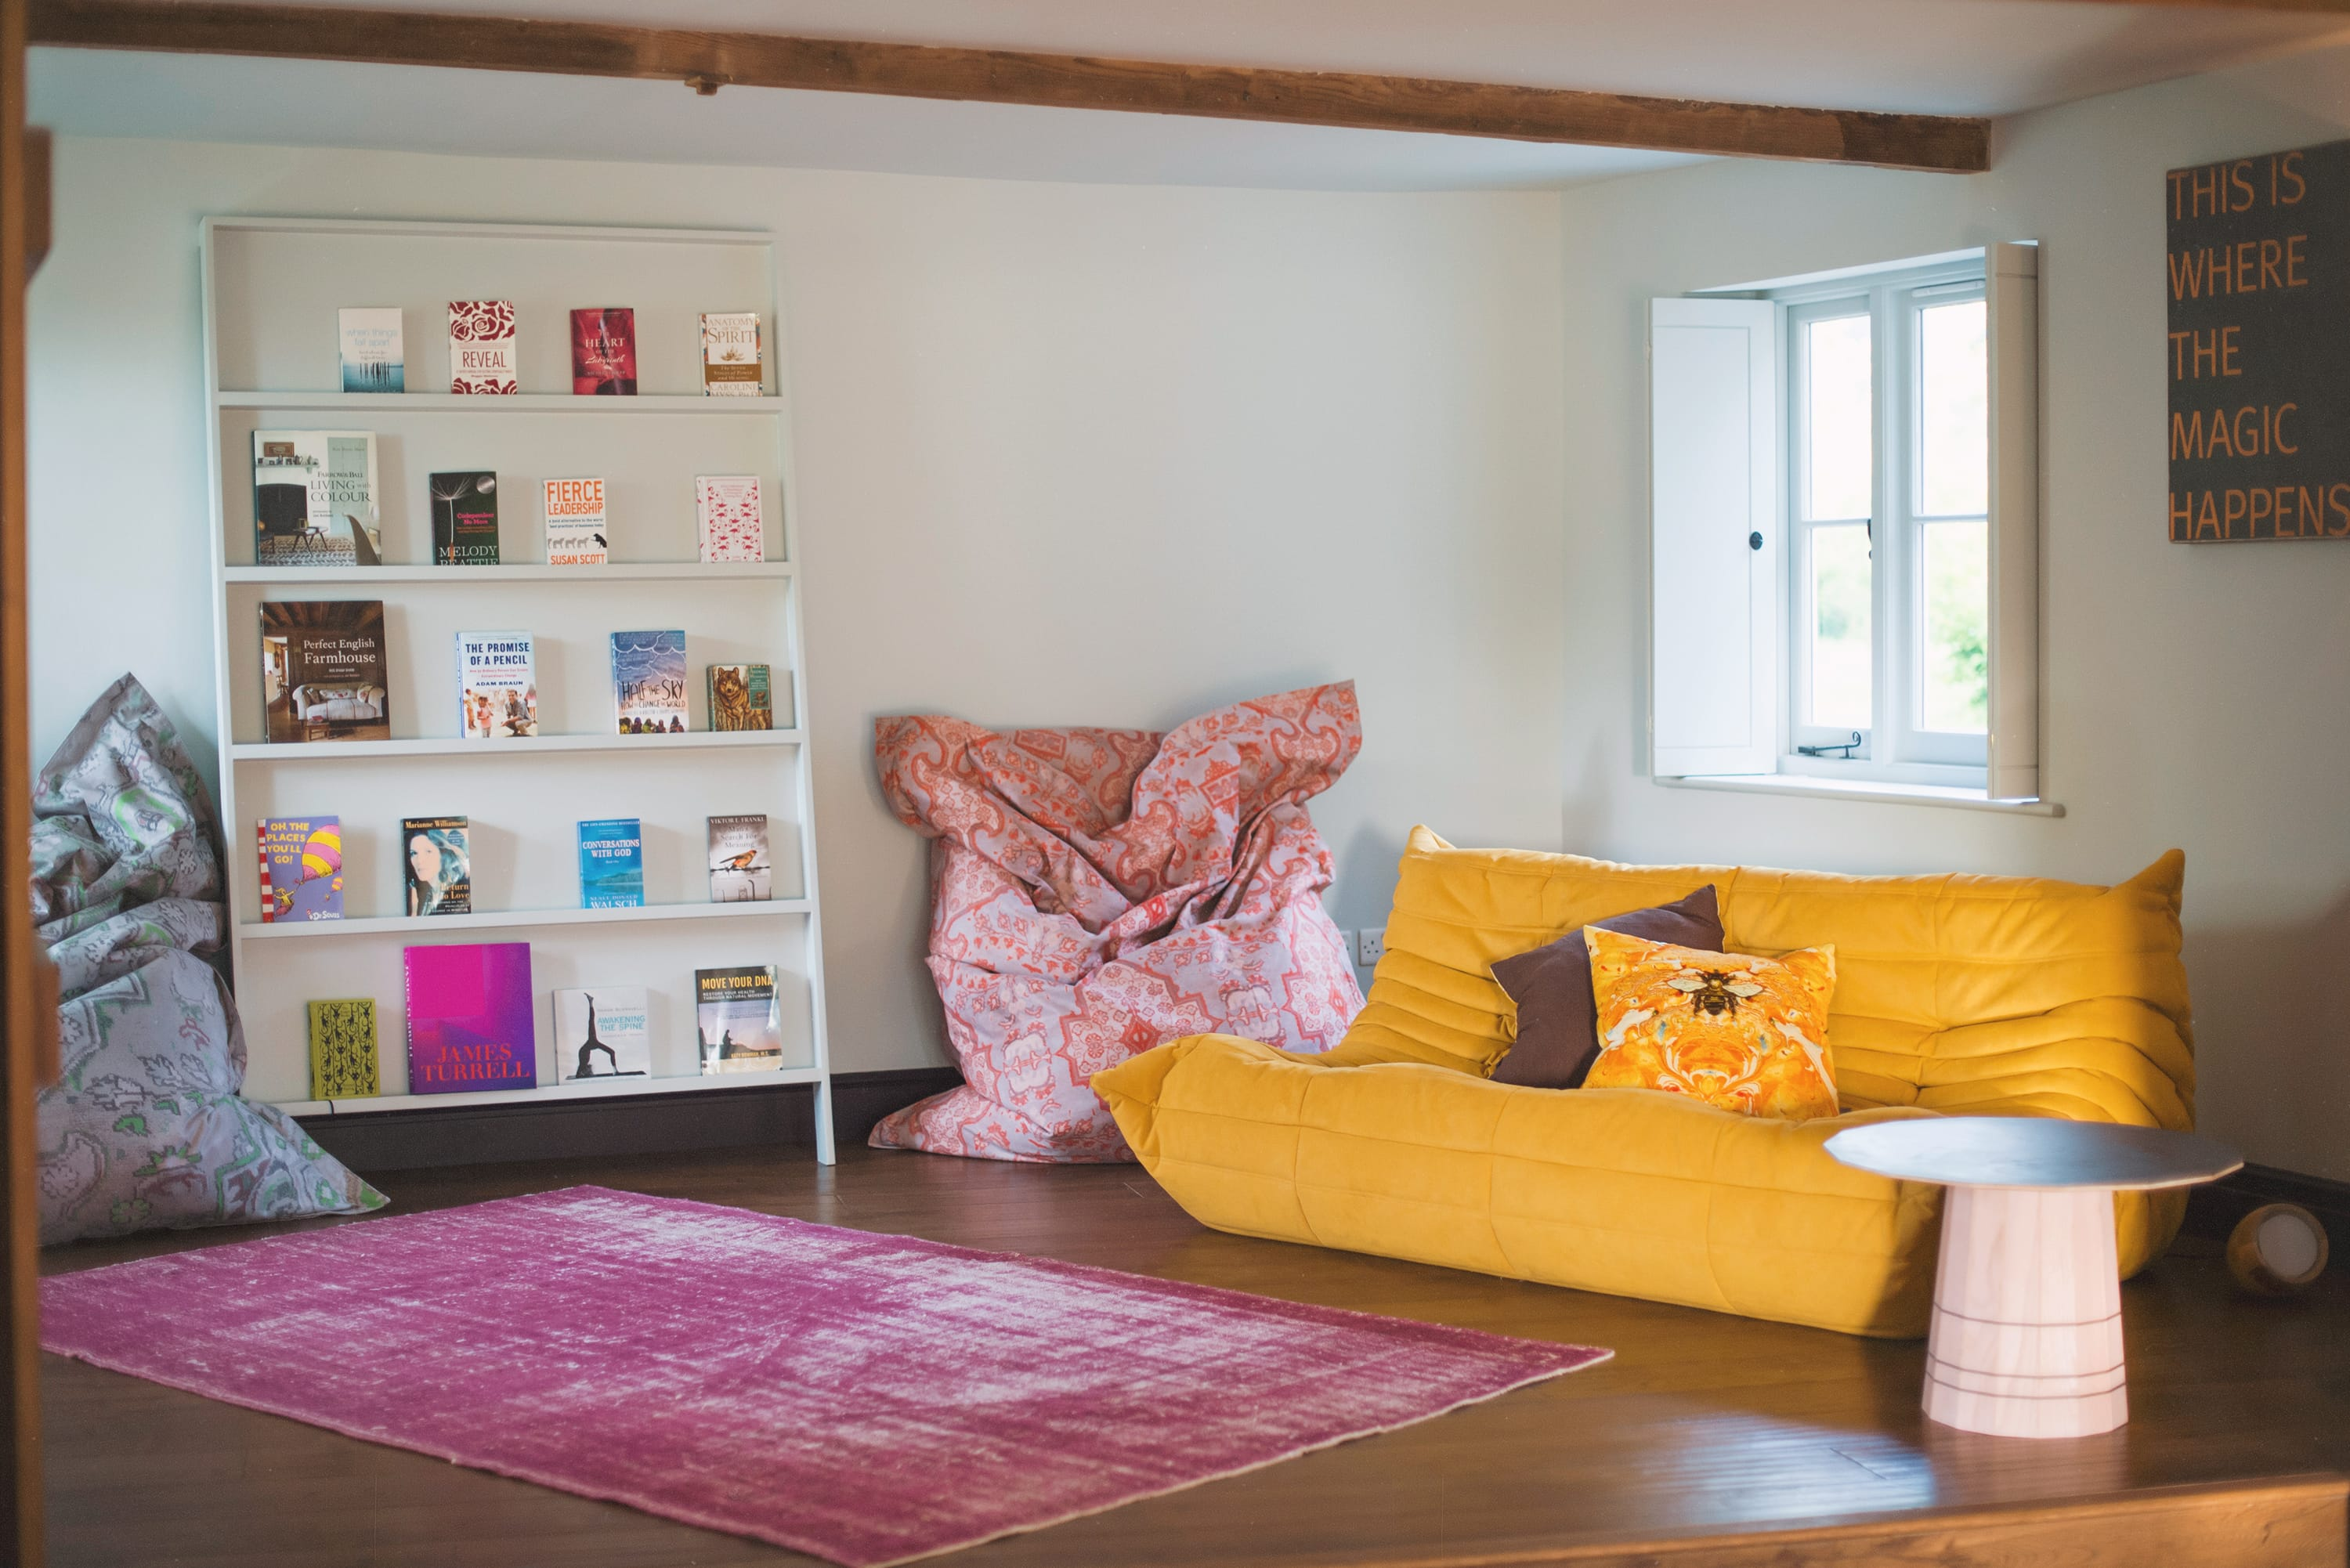 Break out space with comfortable yellow sofa